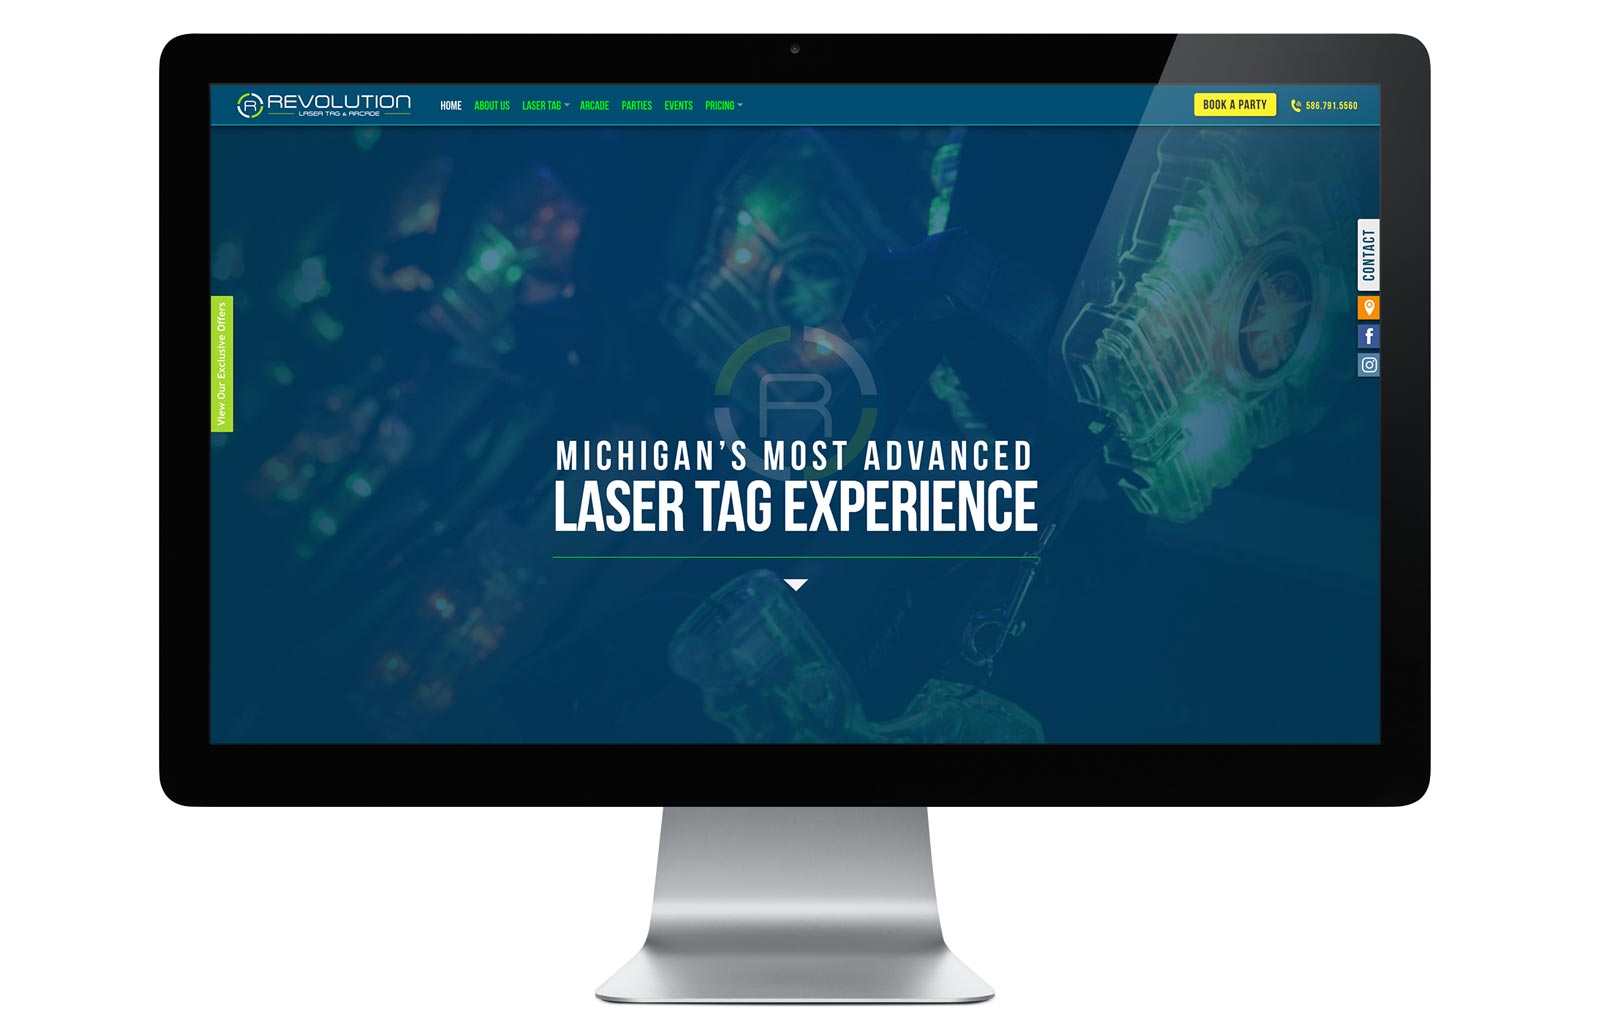 revolution laser tag homepage by drive creative